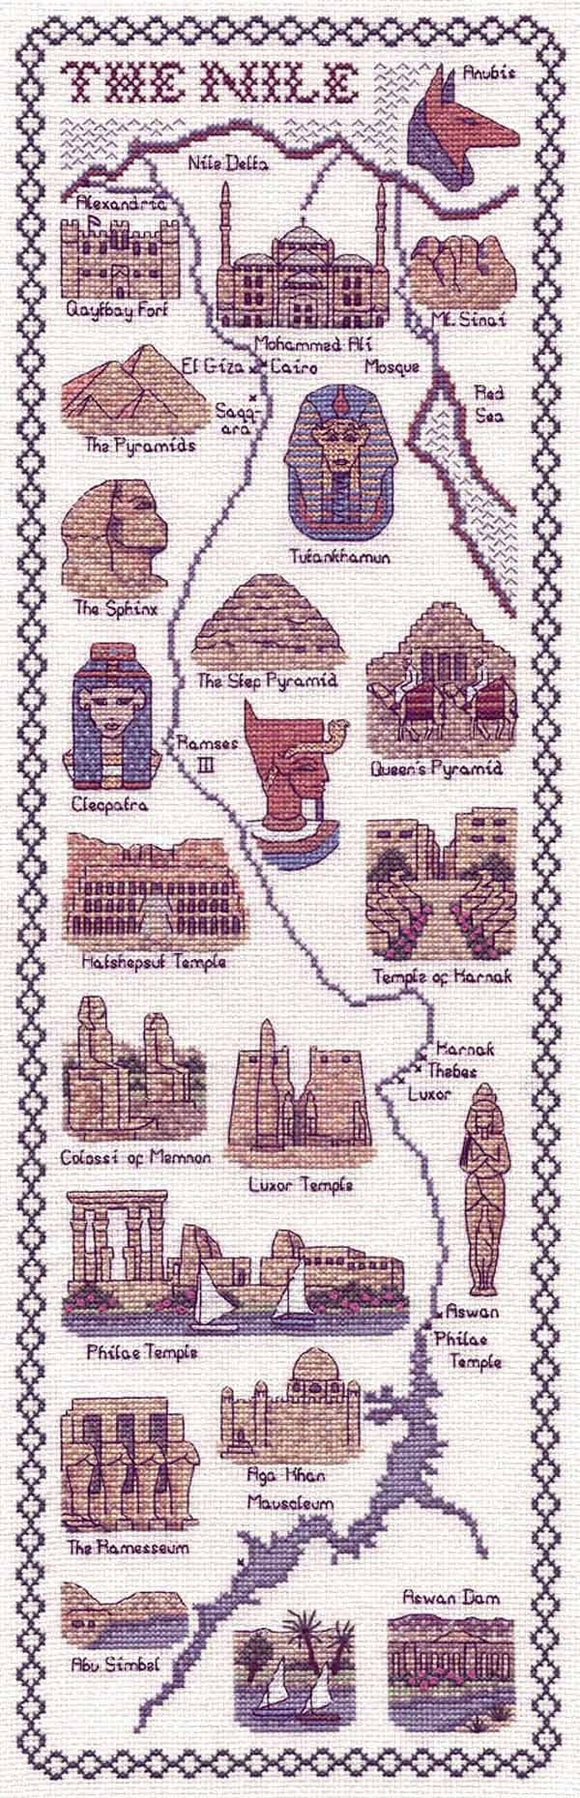 The Nile Map Cross Stitch Kit by Classic Embroidery